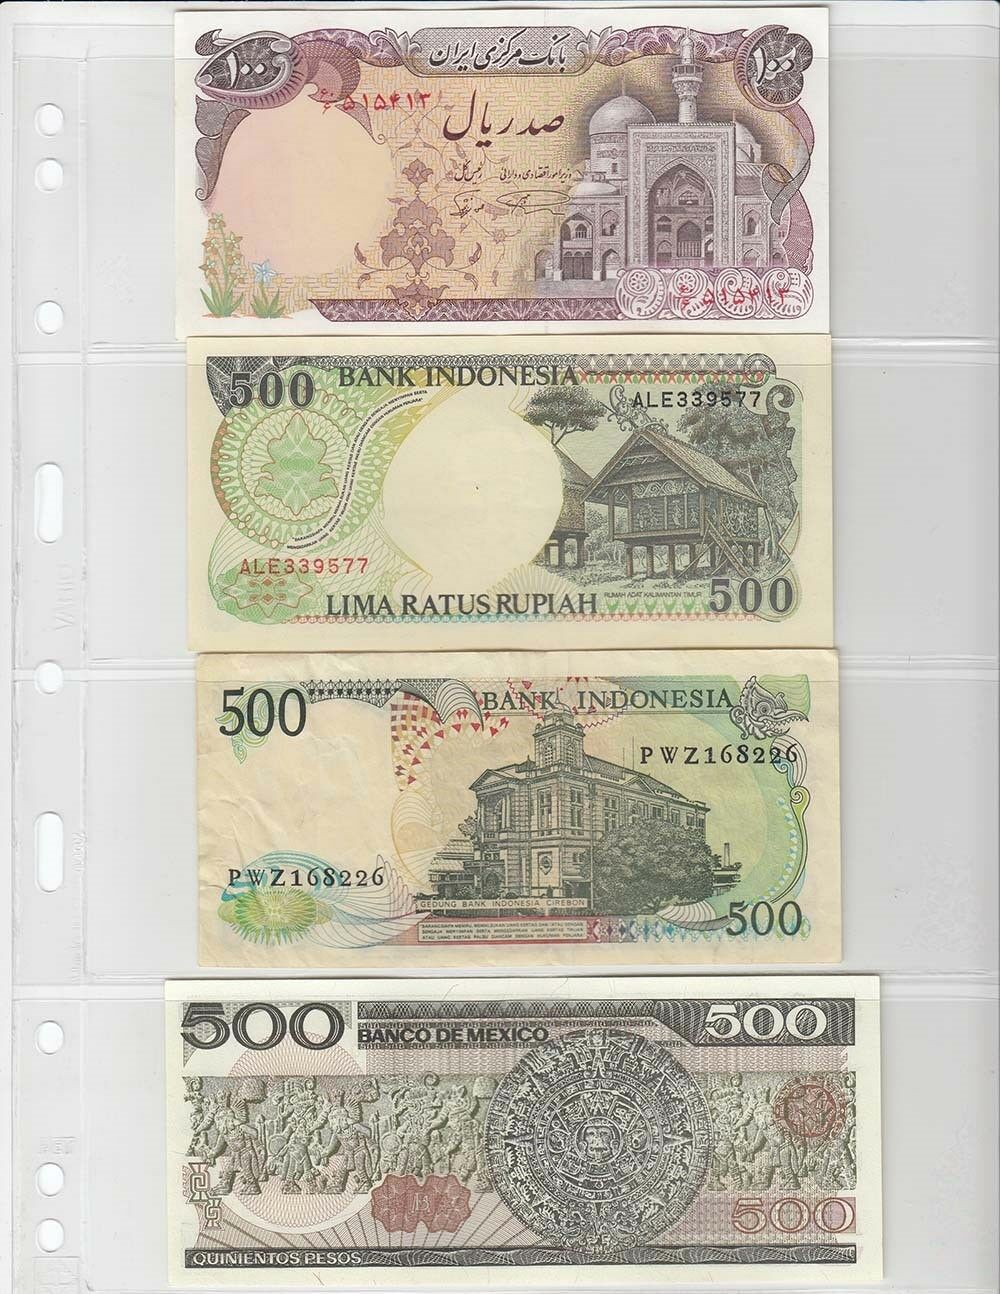 3 RINGS FOR PAPER MONEY 3 POCKET CLEAR SHEET ALBUM PAGE CURRENCY